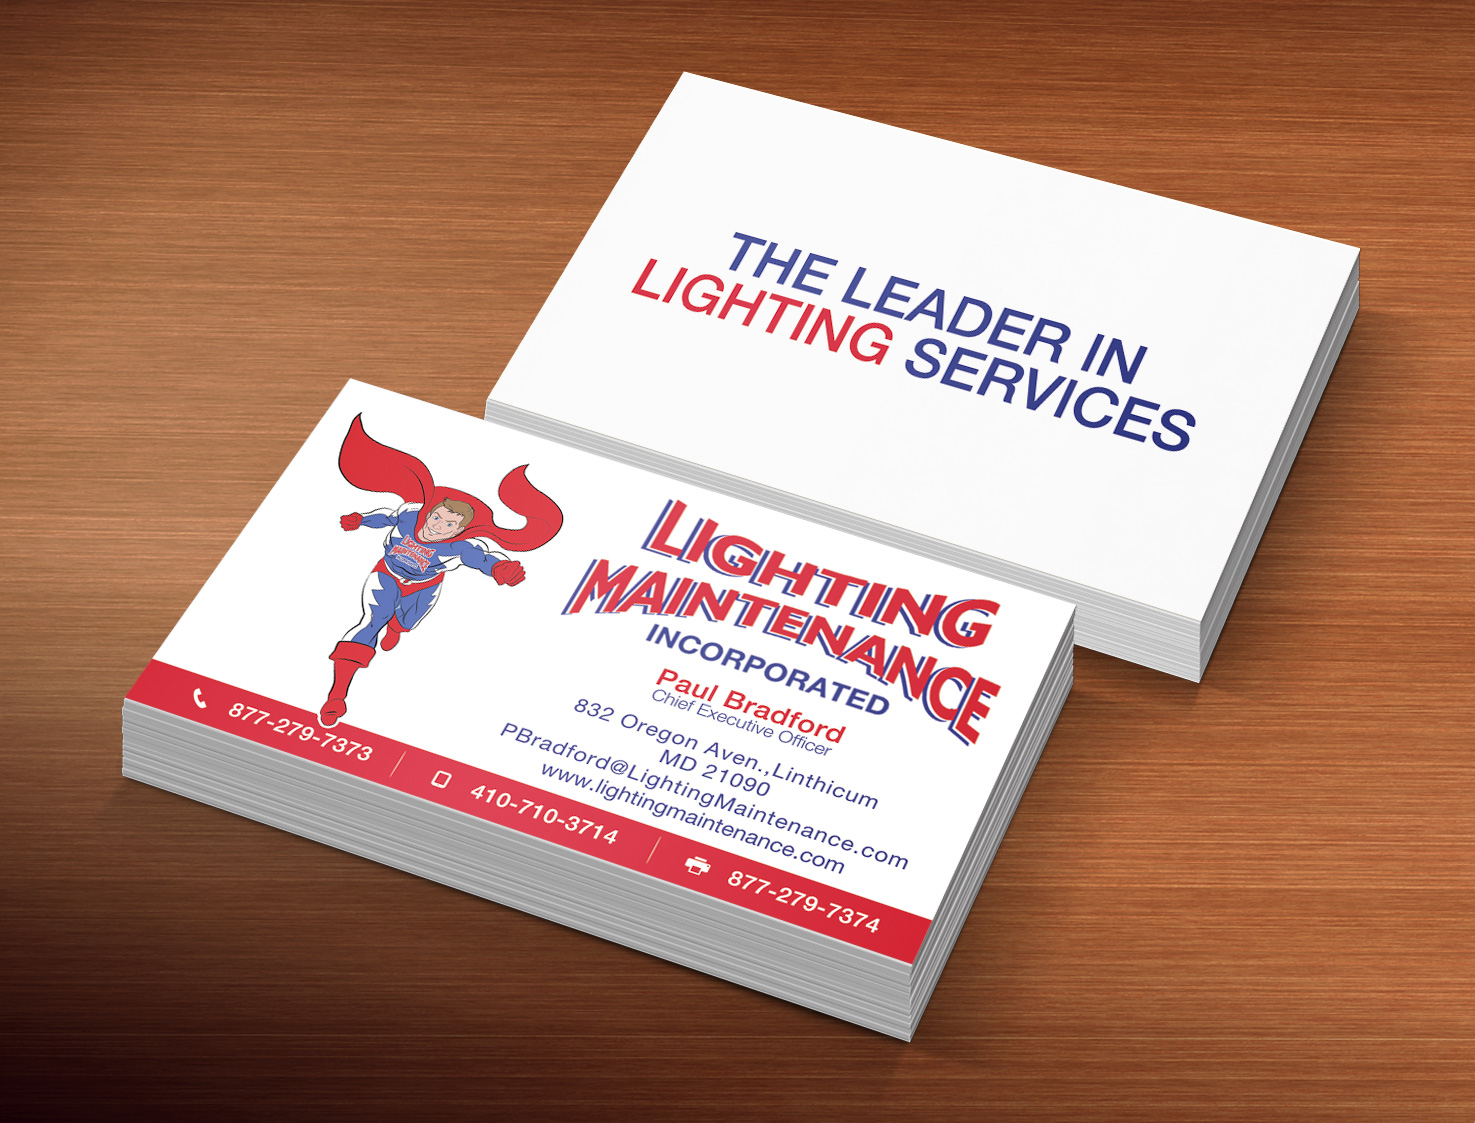 Business Cards Lighting Designer Choice Image - Card Design And Card ...